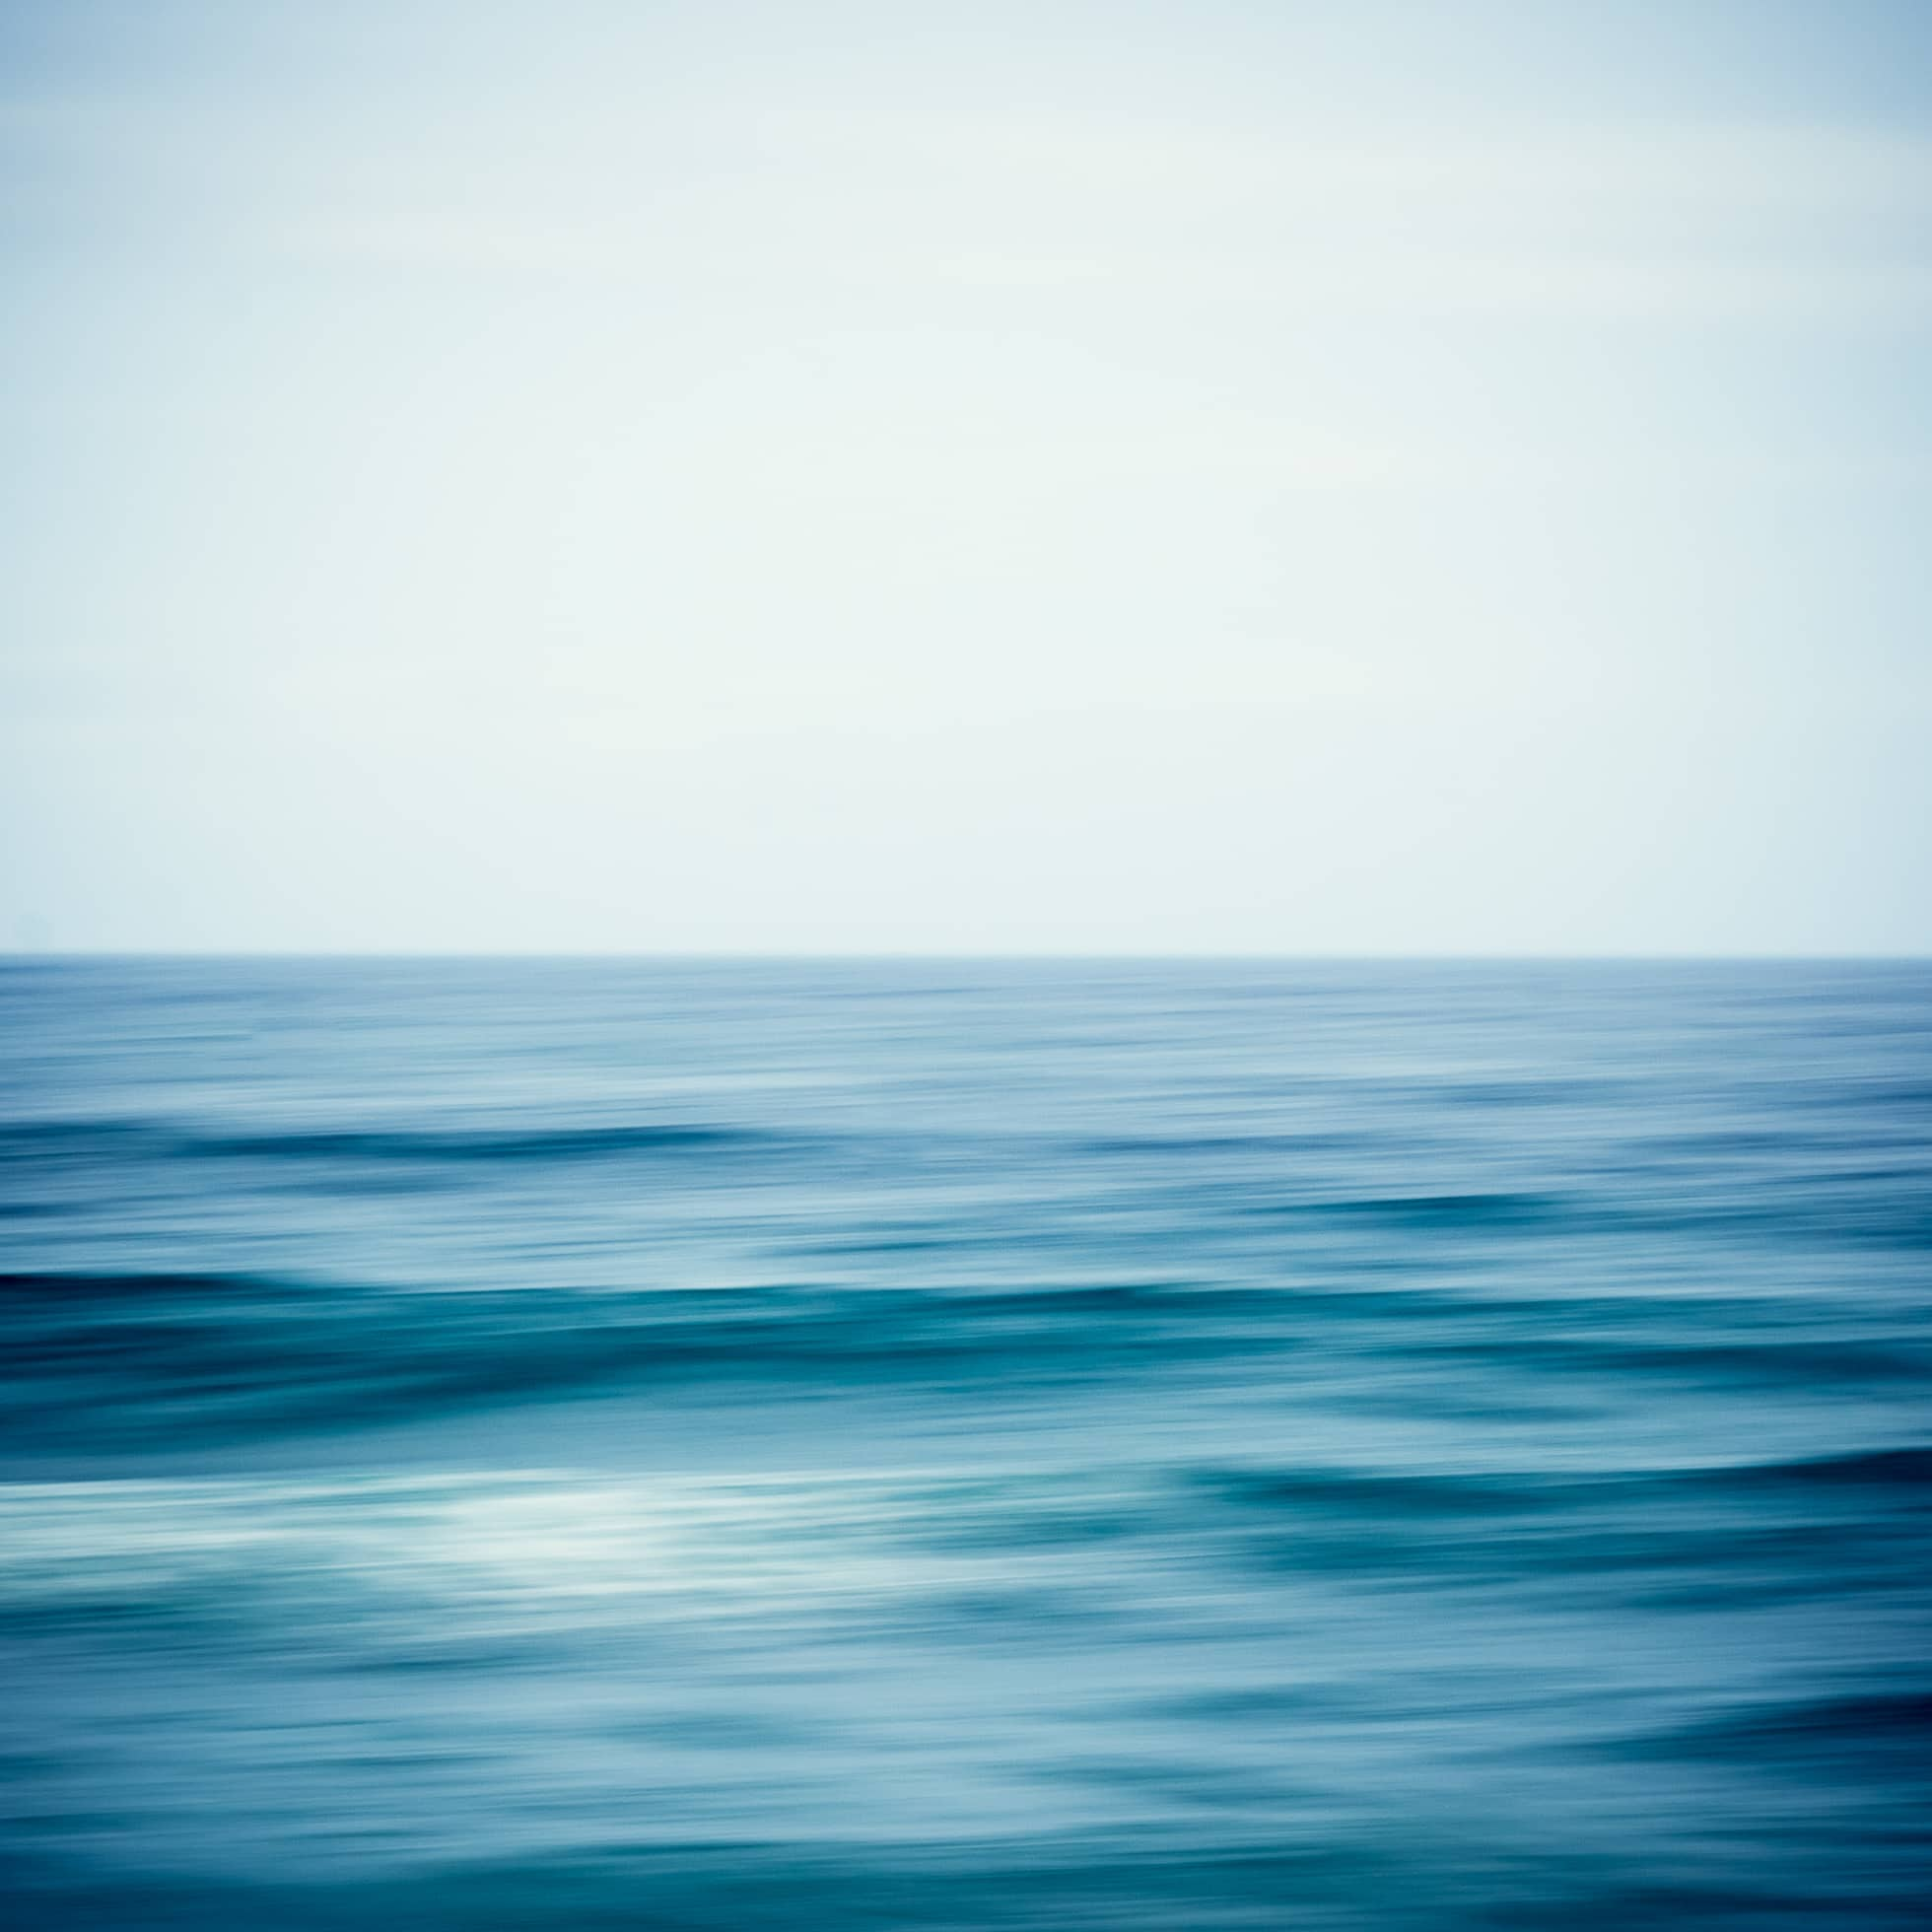 abstract seascape using panning technique by amy mcginley